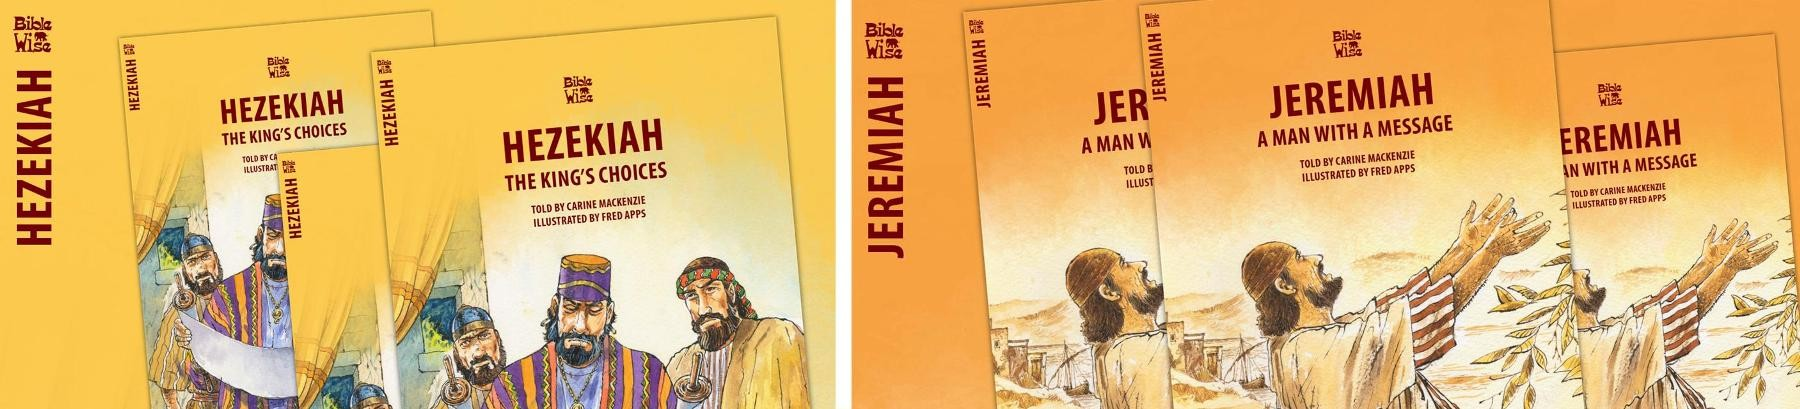 Two New Biblewise Books